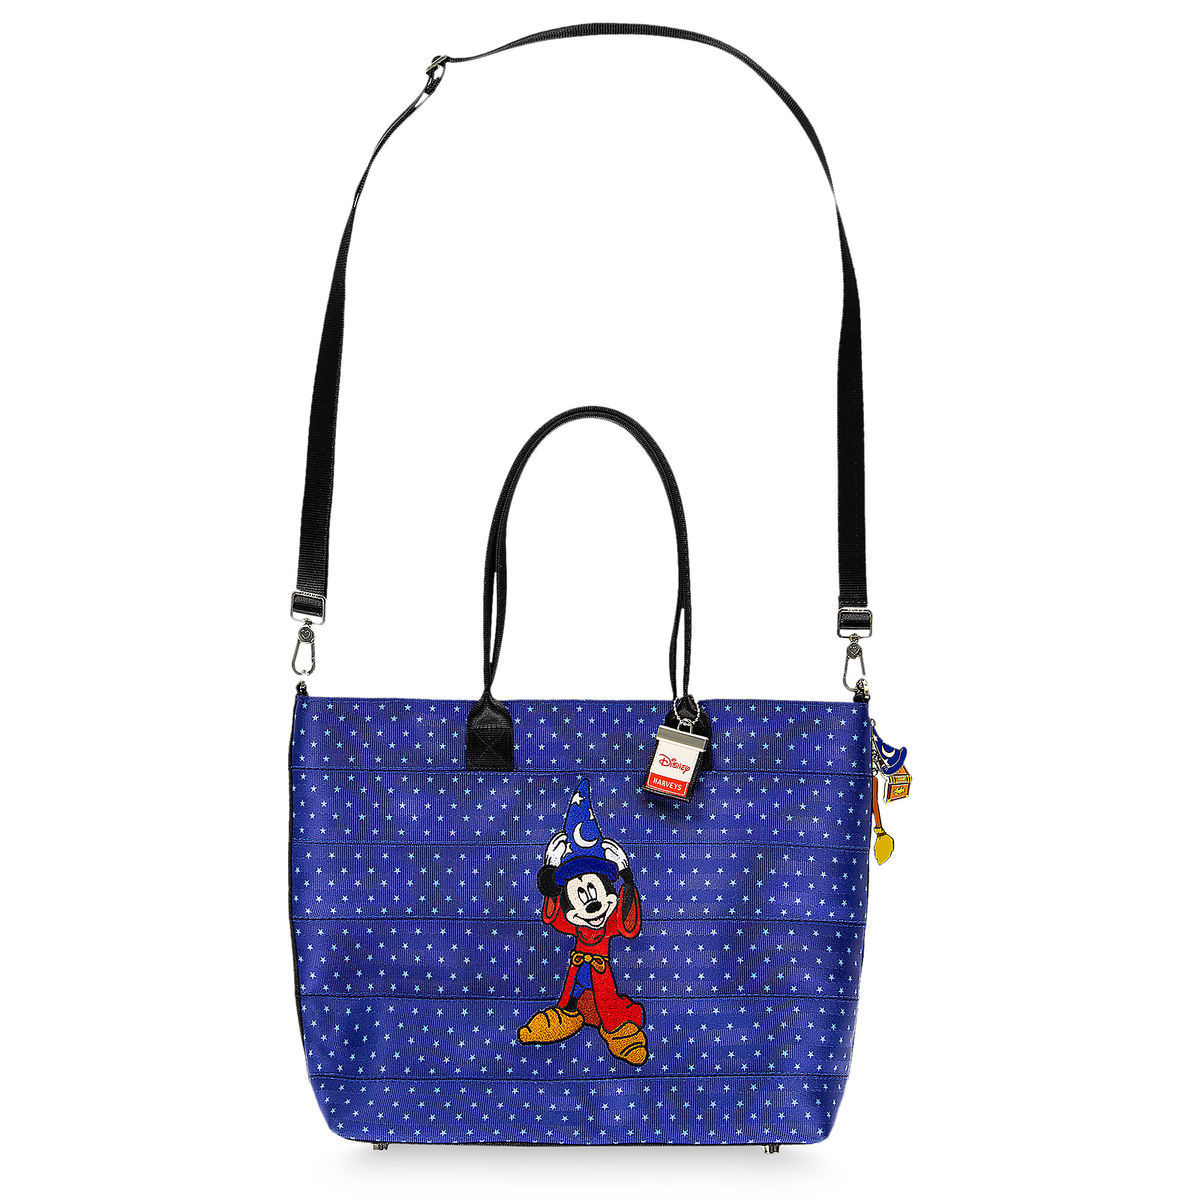 Product Image of Sorcerer Mickey Mouse Tote Bag by Harveys   3 7b619eb43d